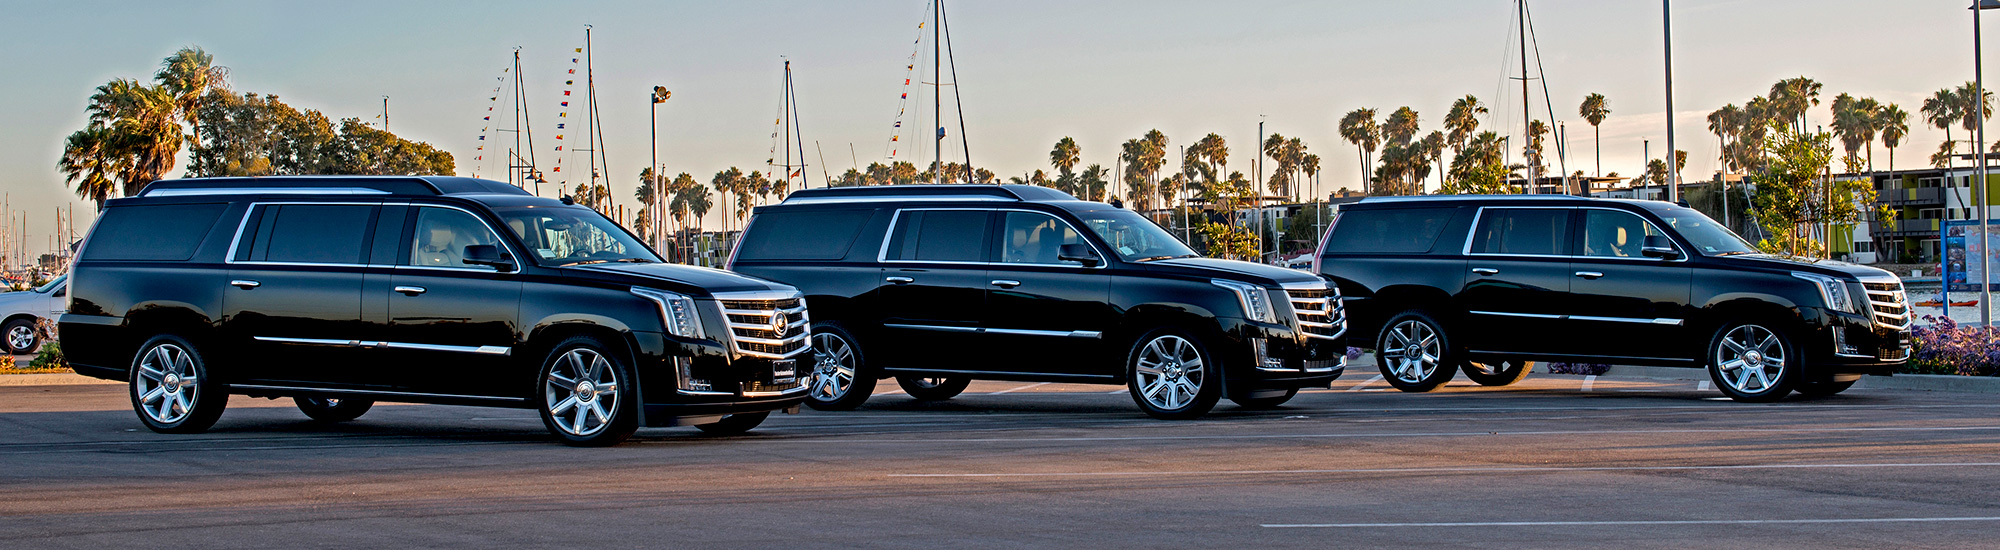 Cadillac cadillac escalade weight : Becker Automotive Design // Luxury Transport Coaches // Sprinter ...